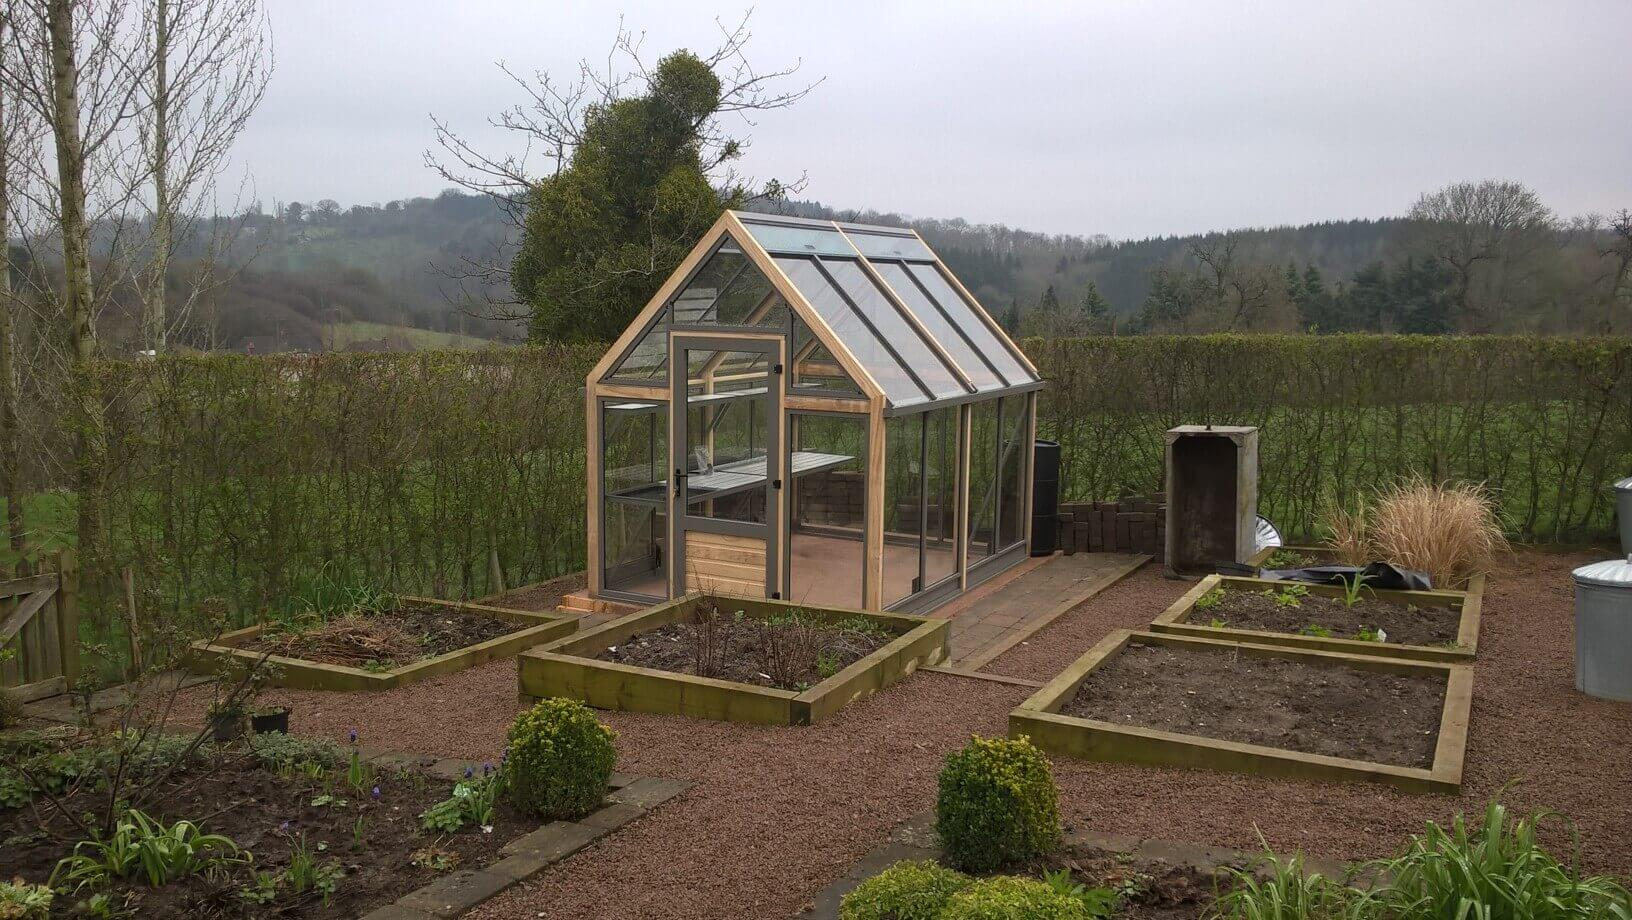 Recently landscaped kitchen garden with greenhouse